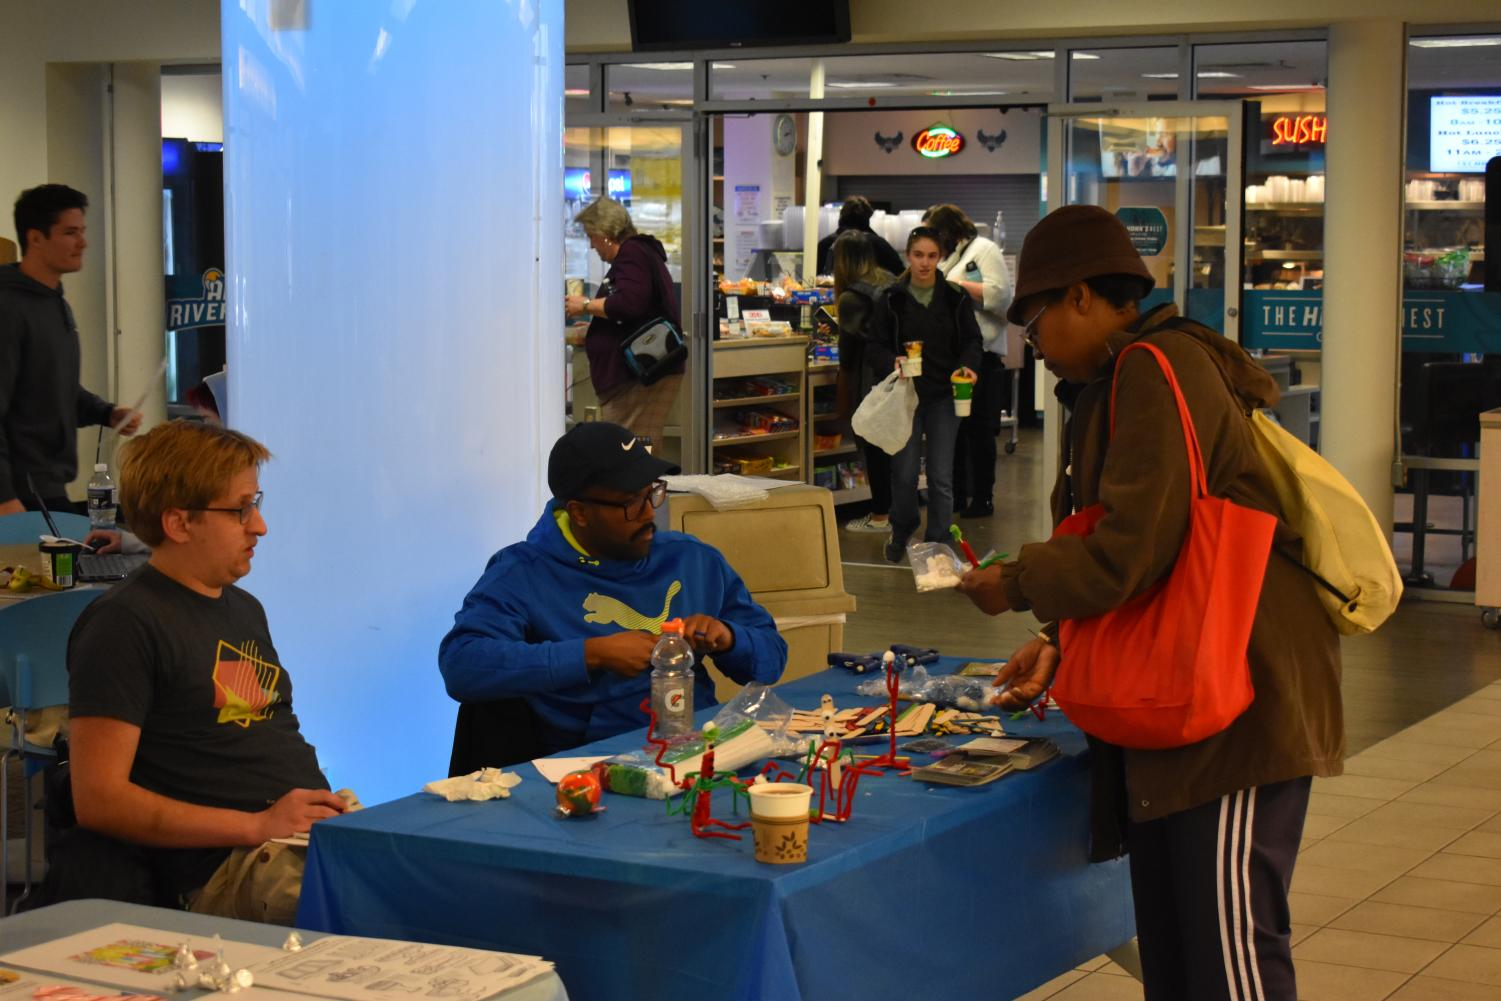 Students celebrate the holiday's at an event with craft stations, hot cocoa, gingerbread house building and more.